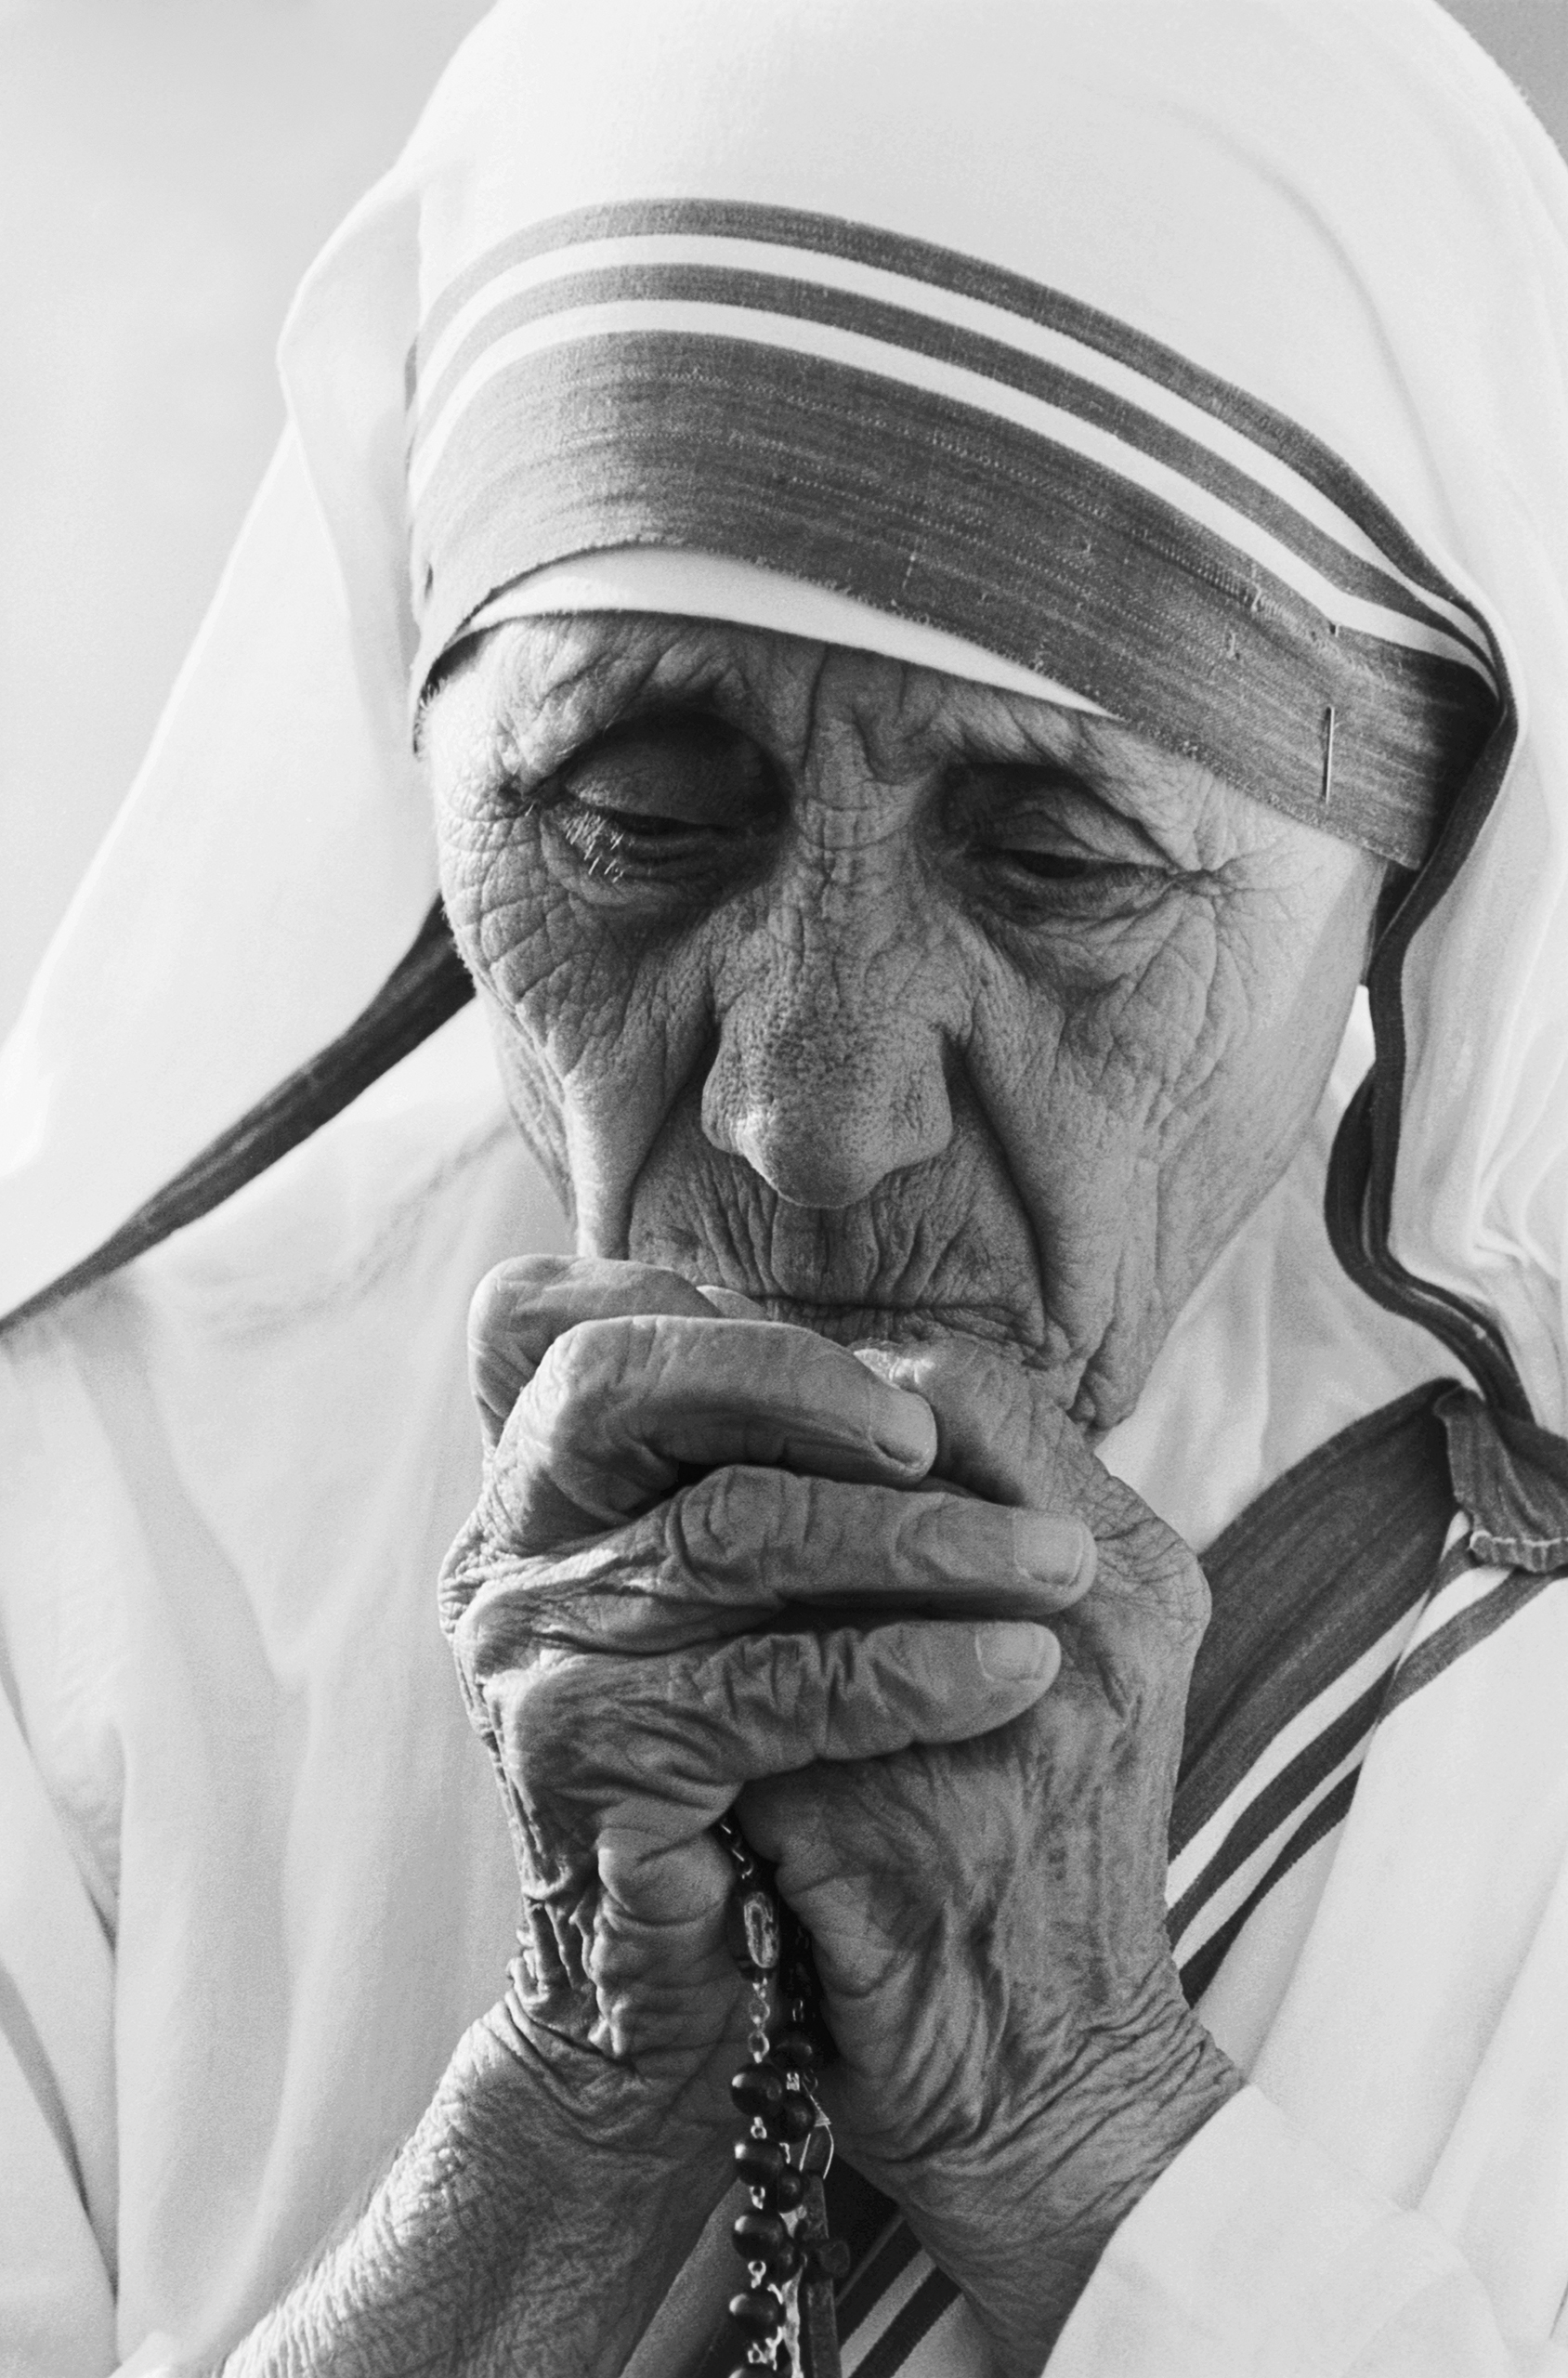 Nobel Peace Prize winner Mother Teresa prays in 1988, during the dedication ceremonies at her 400th worldwide mission to care for the poor in Tijuana, Mexico. The Tijuana mission will shelter the homeless, the terminally ill and unwed mothers.